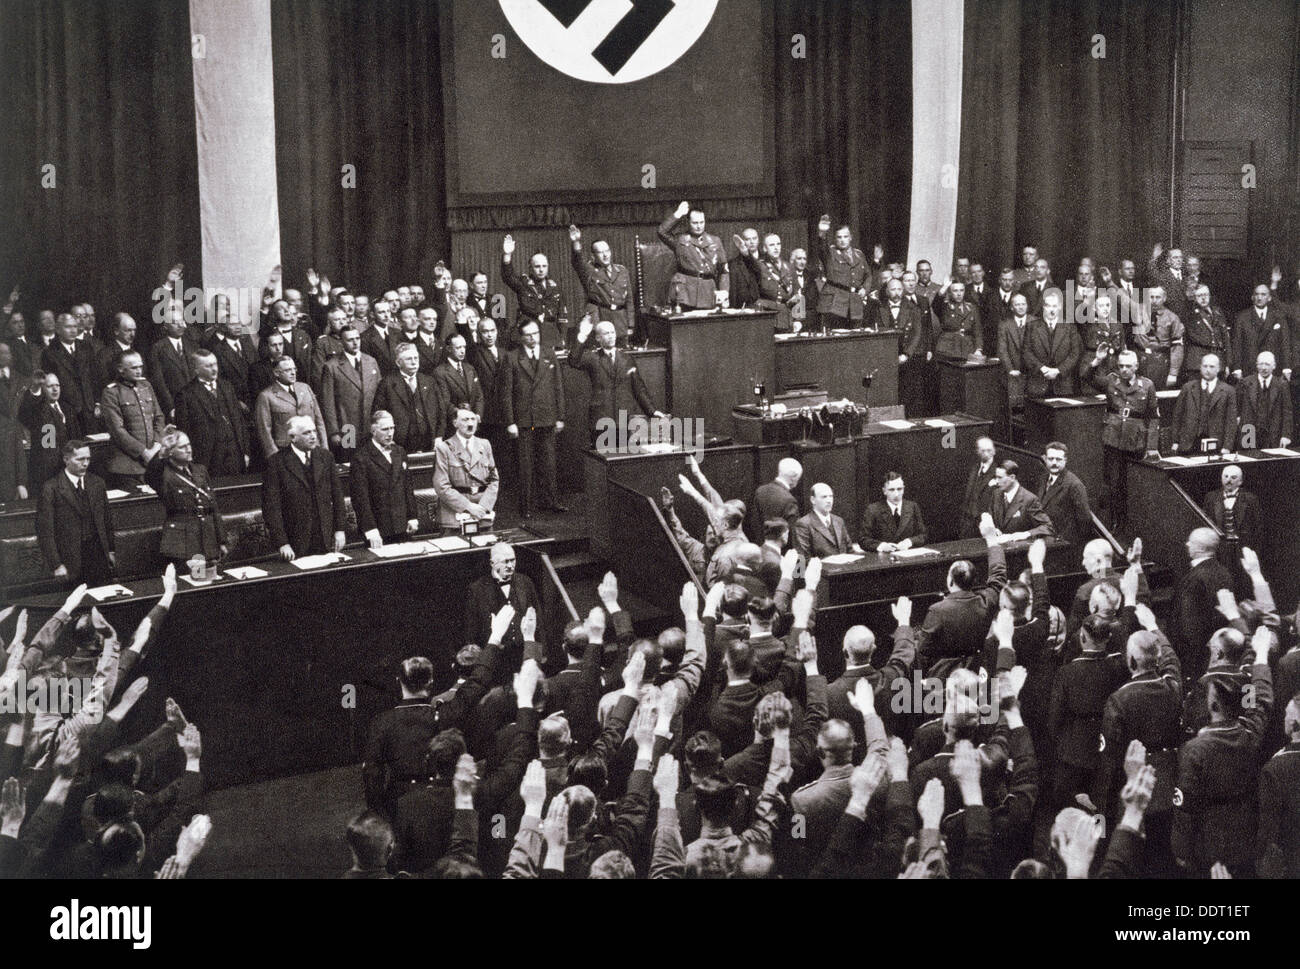 Chancellor Adolf Hitler making a speech before the Reichstag, Berlin, 17th May 1933. Artist: Unknown - Stock Image